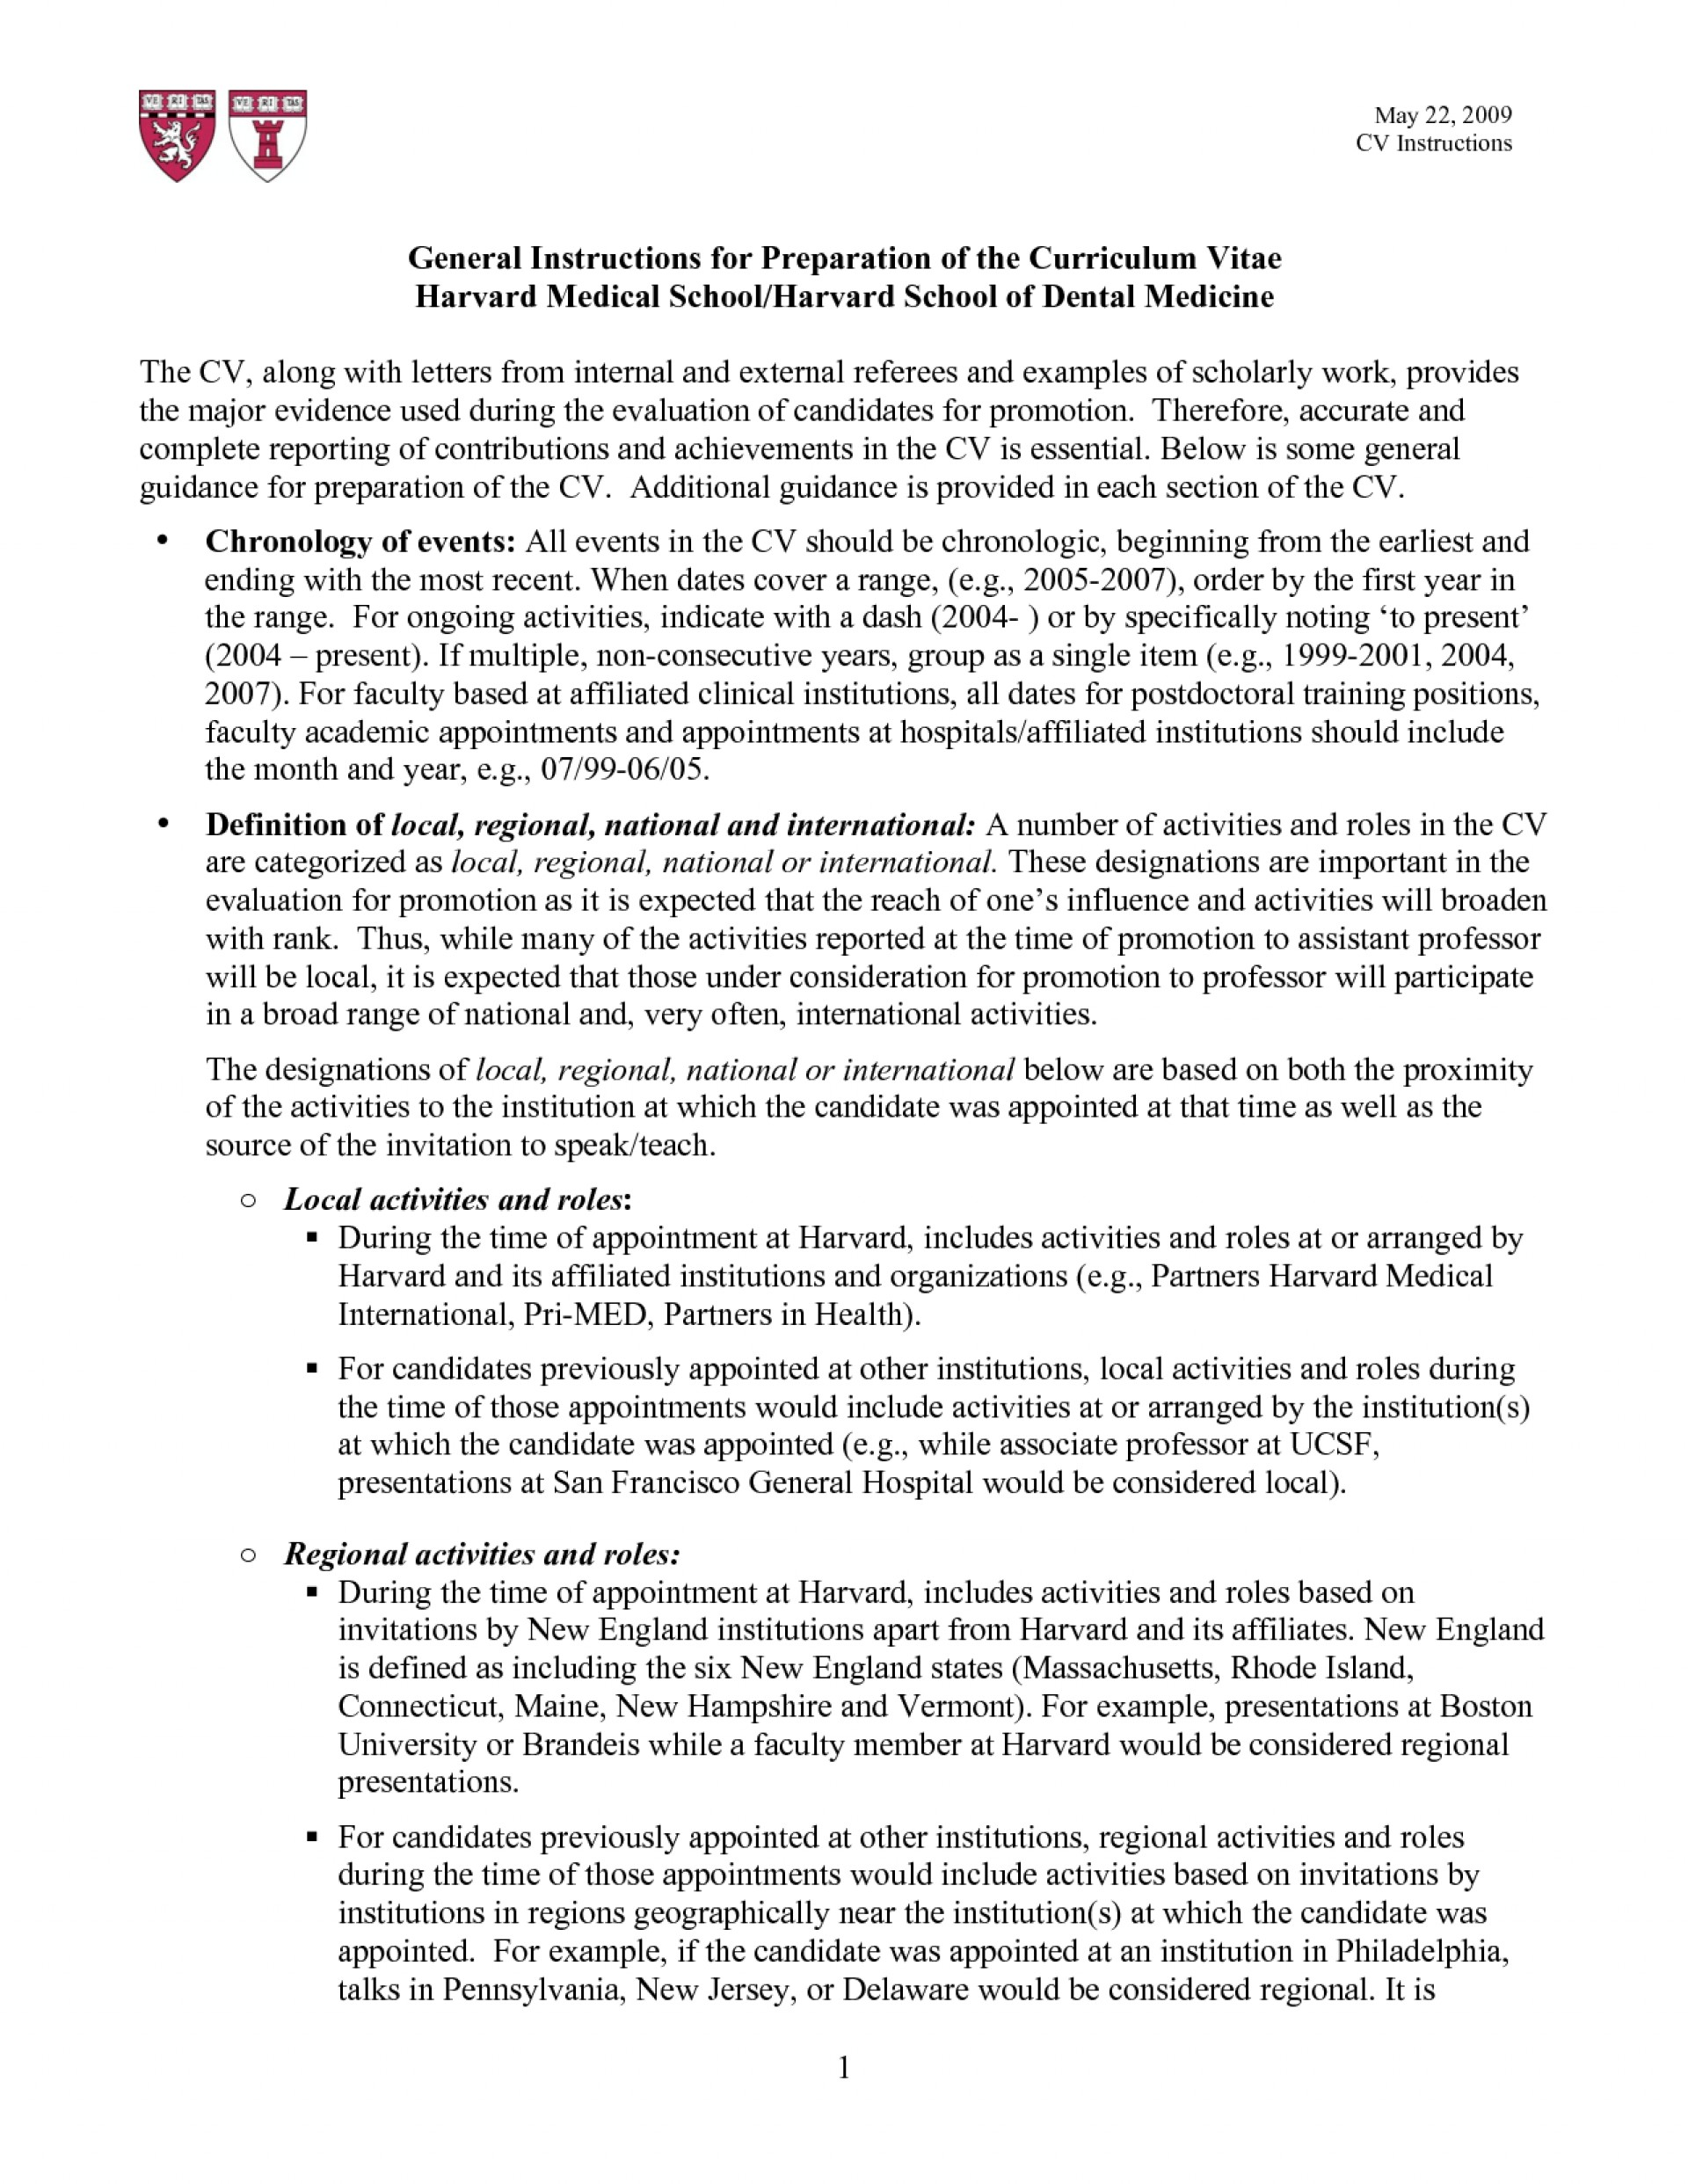 005 Cv Template Harvard Medical School Kgpi3idg Essays That Worked Essay Staggering University Common App Business 1920